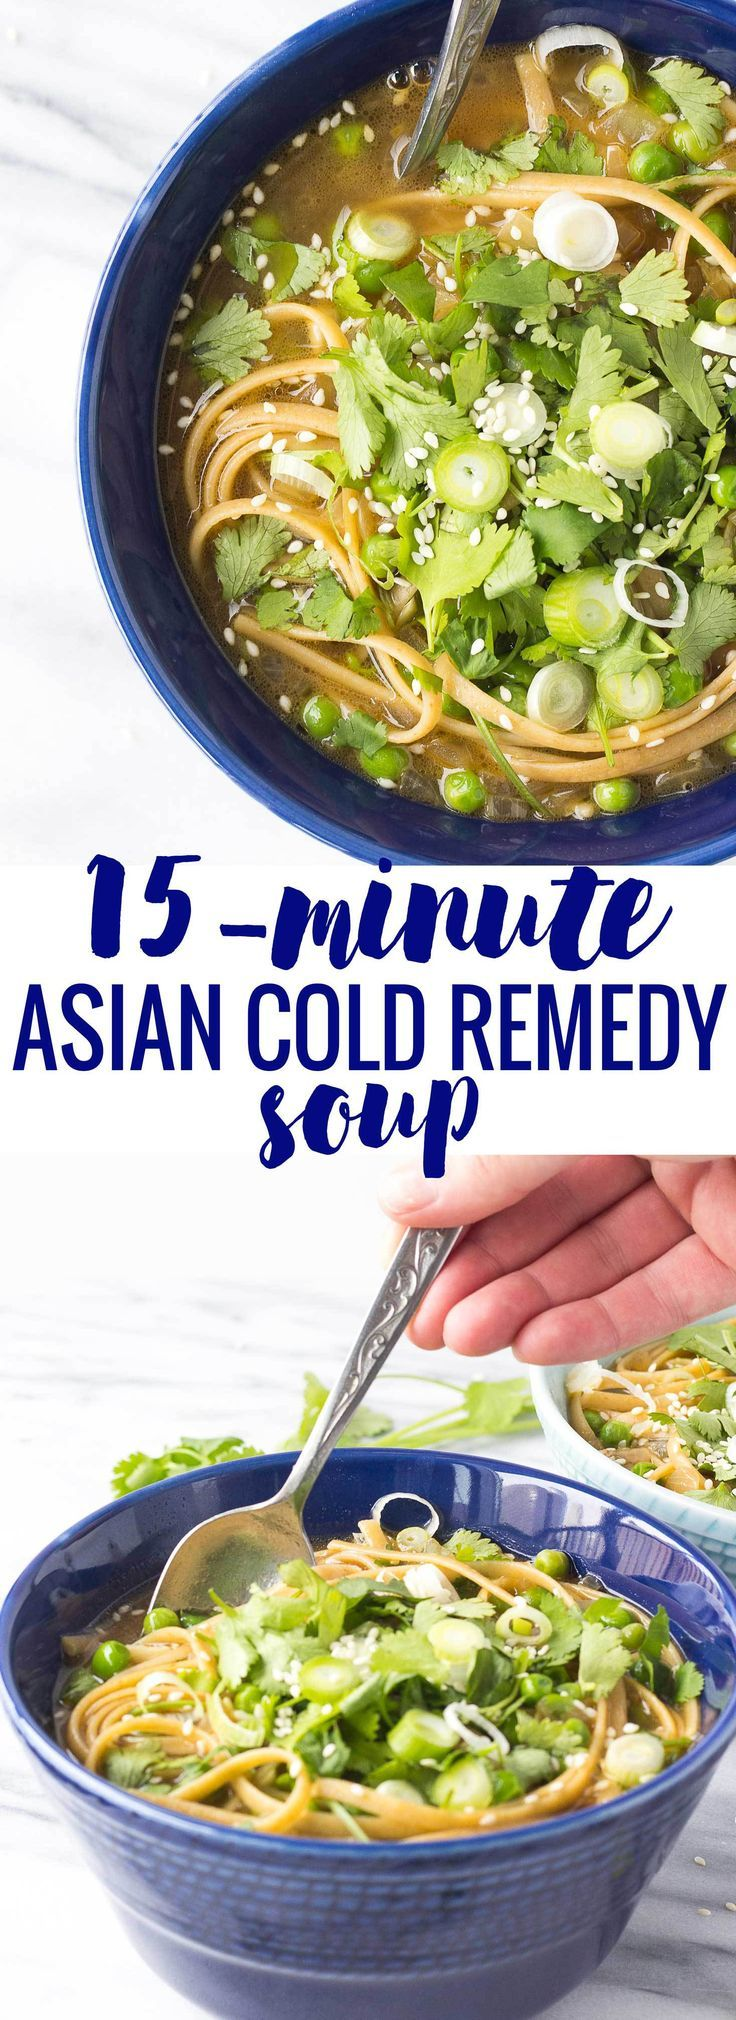 15 Minute Asian Cold Remedy Soup // Fork in the Kitchen: